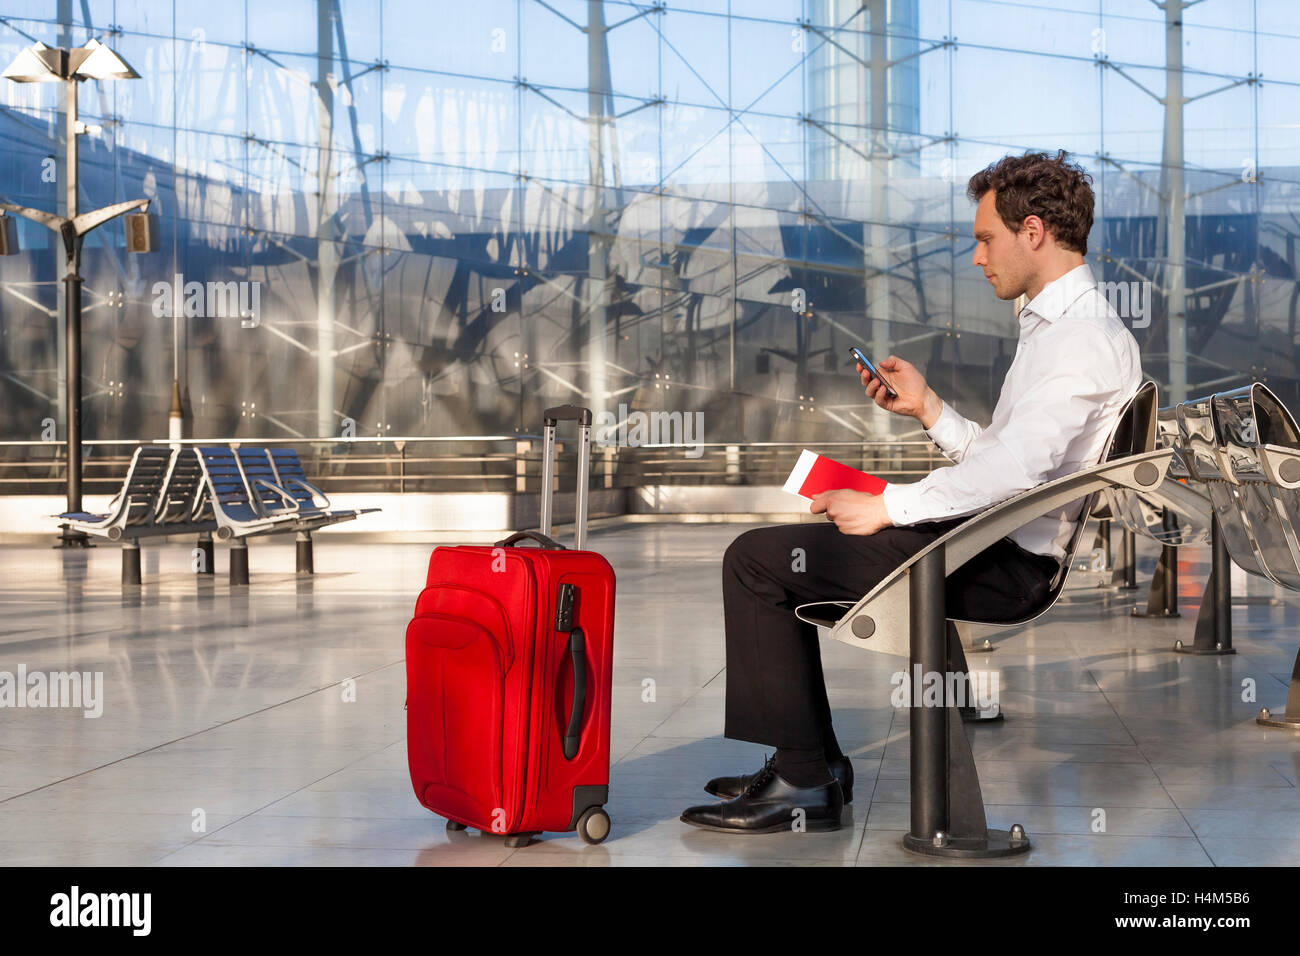 Businessman traveling with smartphone and luggage - Stock Image